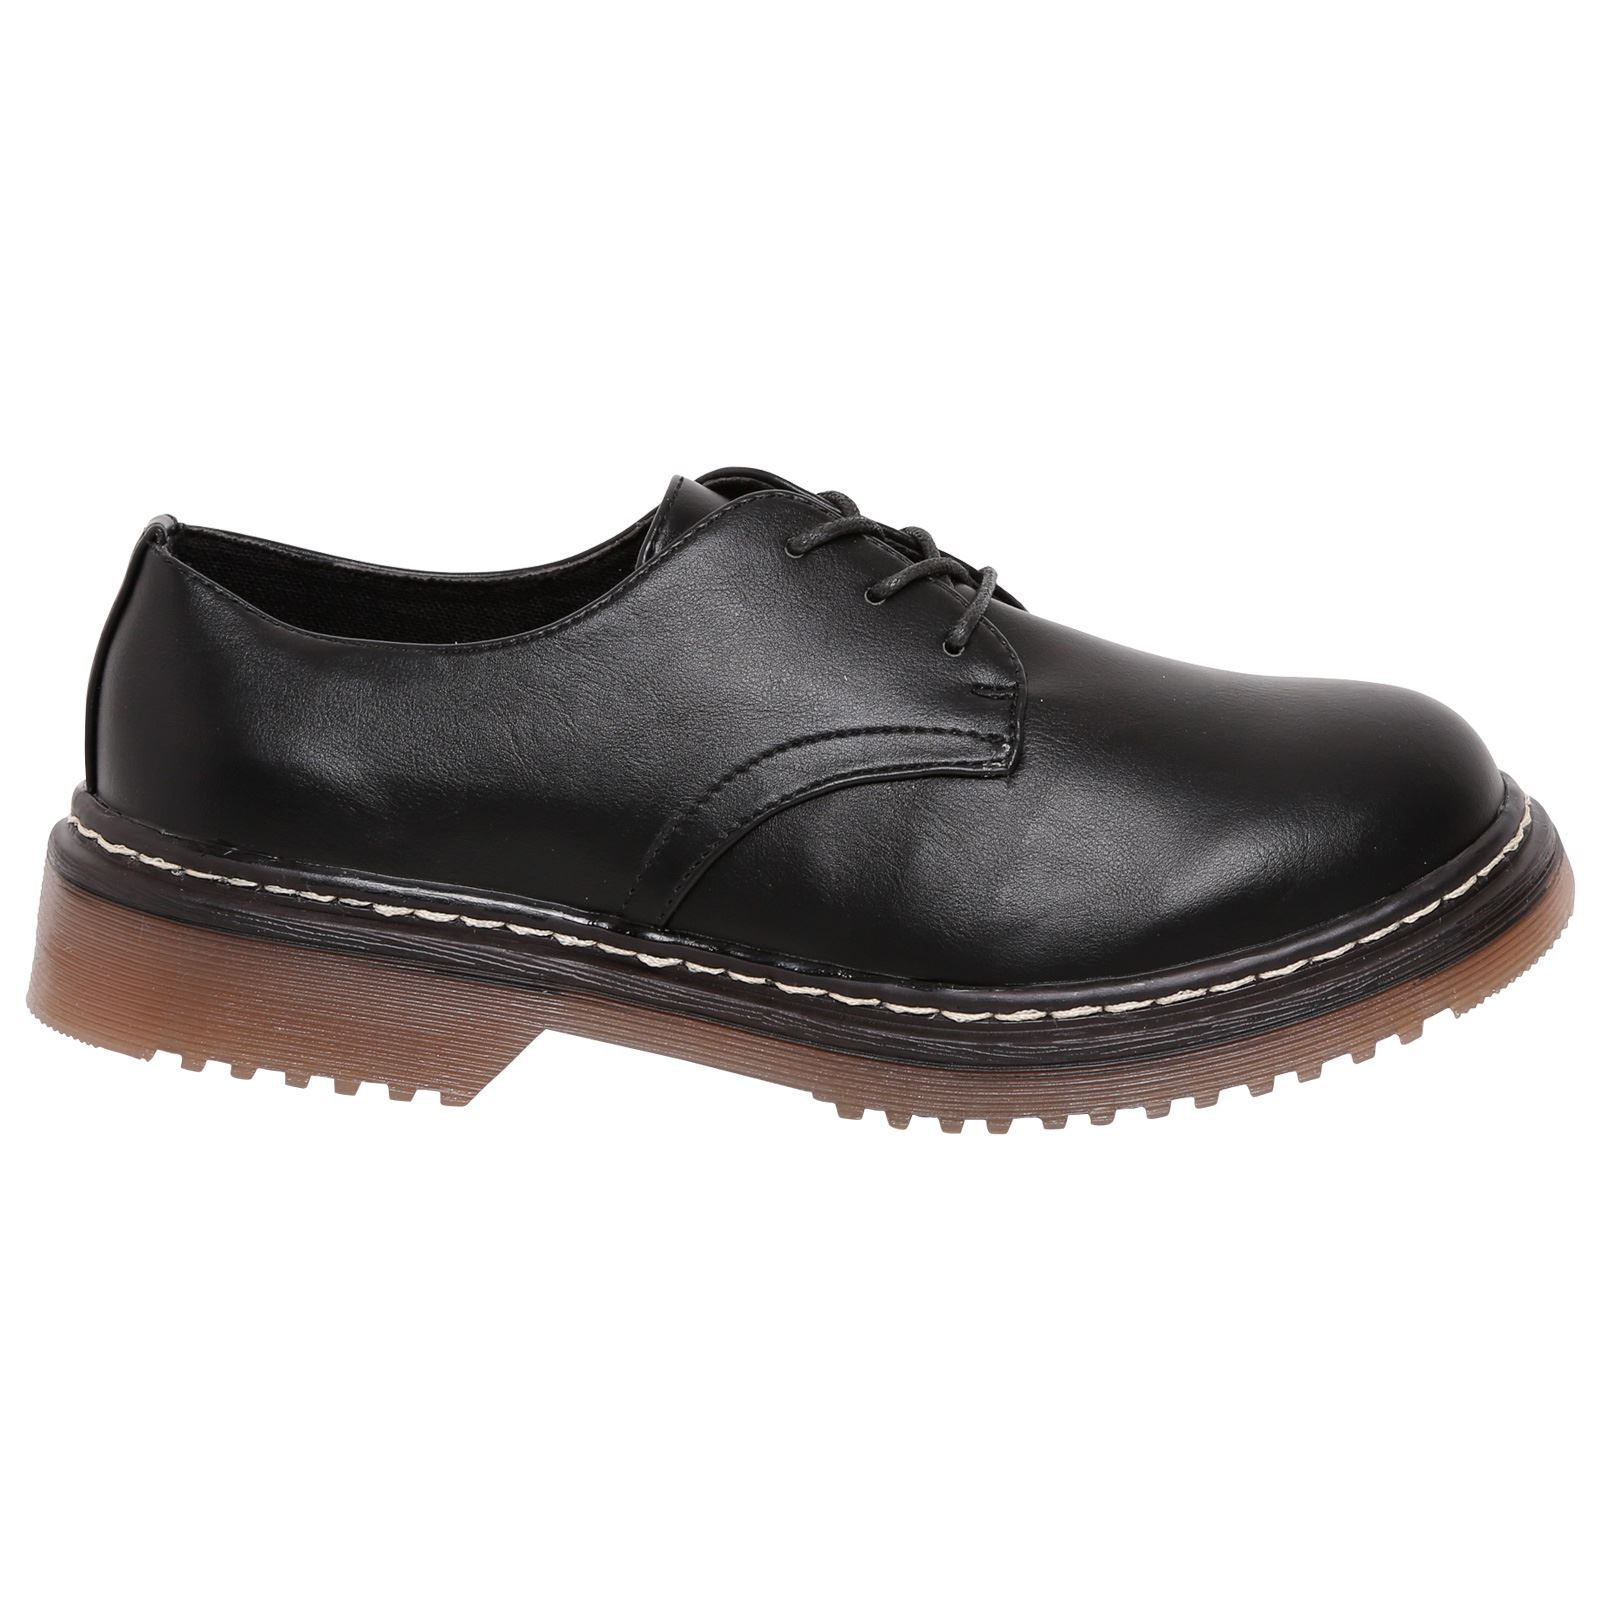 Eleanor Womens Shoes Laces Buckle Brogue Flats Casual School Style Size New UK